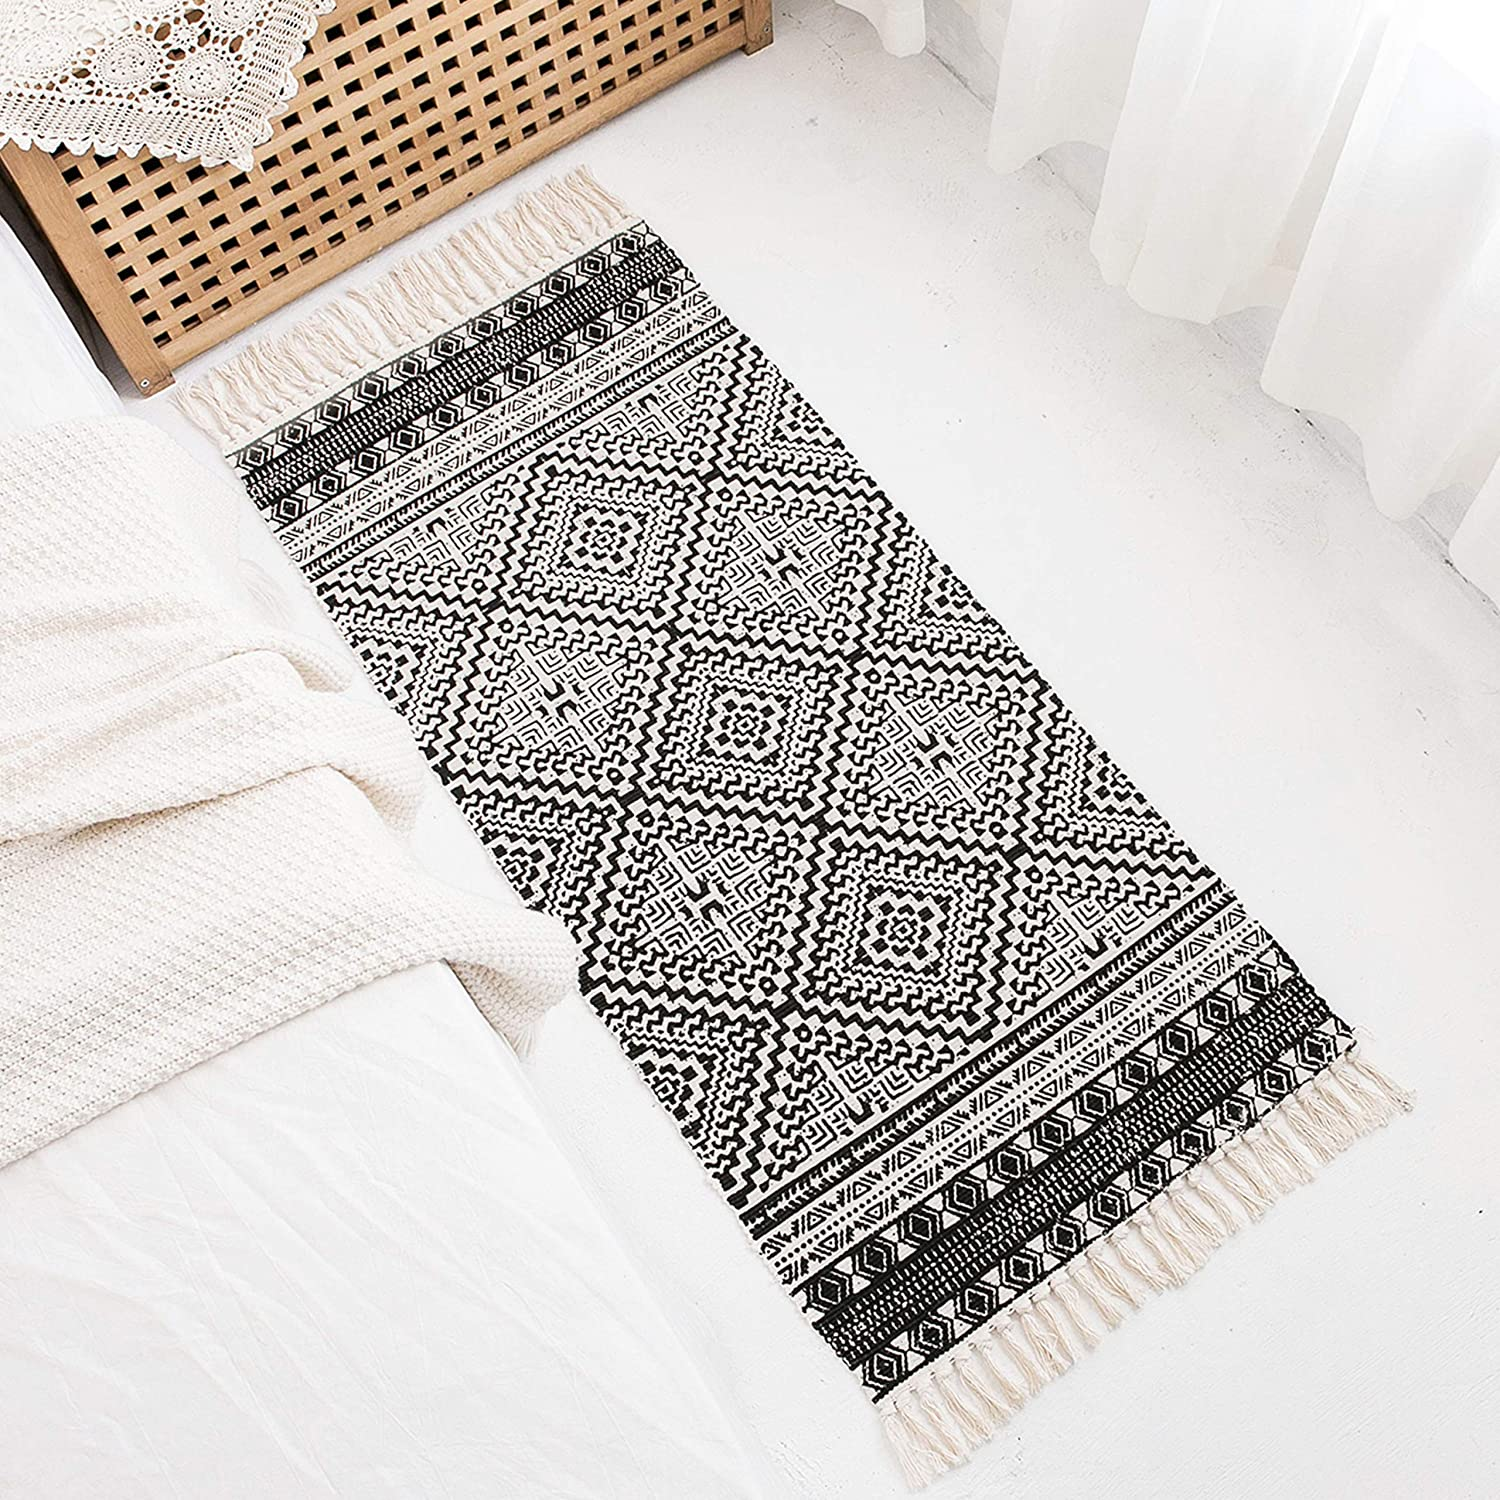 Styled World Cotton Boho Rug with Rug Pad | 2'x4.3' Printed Bohemian Runner Rug with Tassels | Bathroom, Kitchen, Bedroom, Entryway | Black&Cream Square